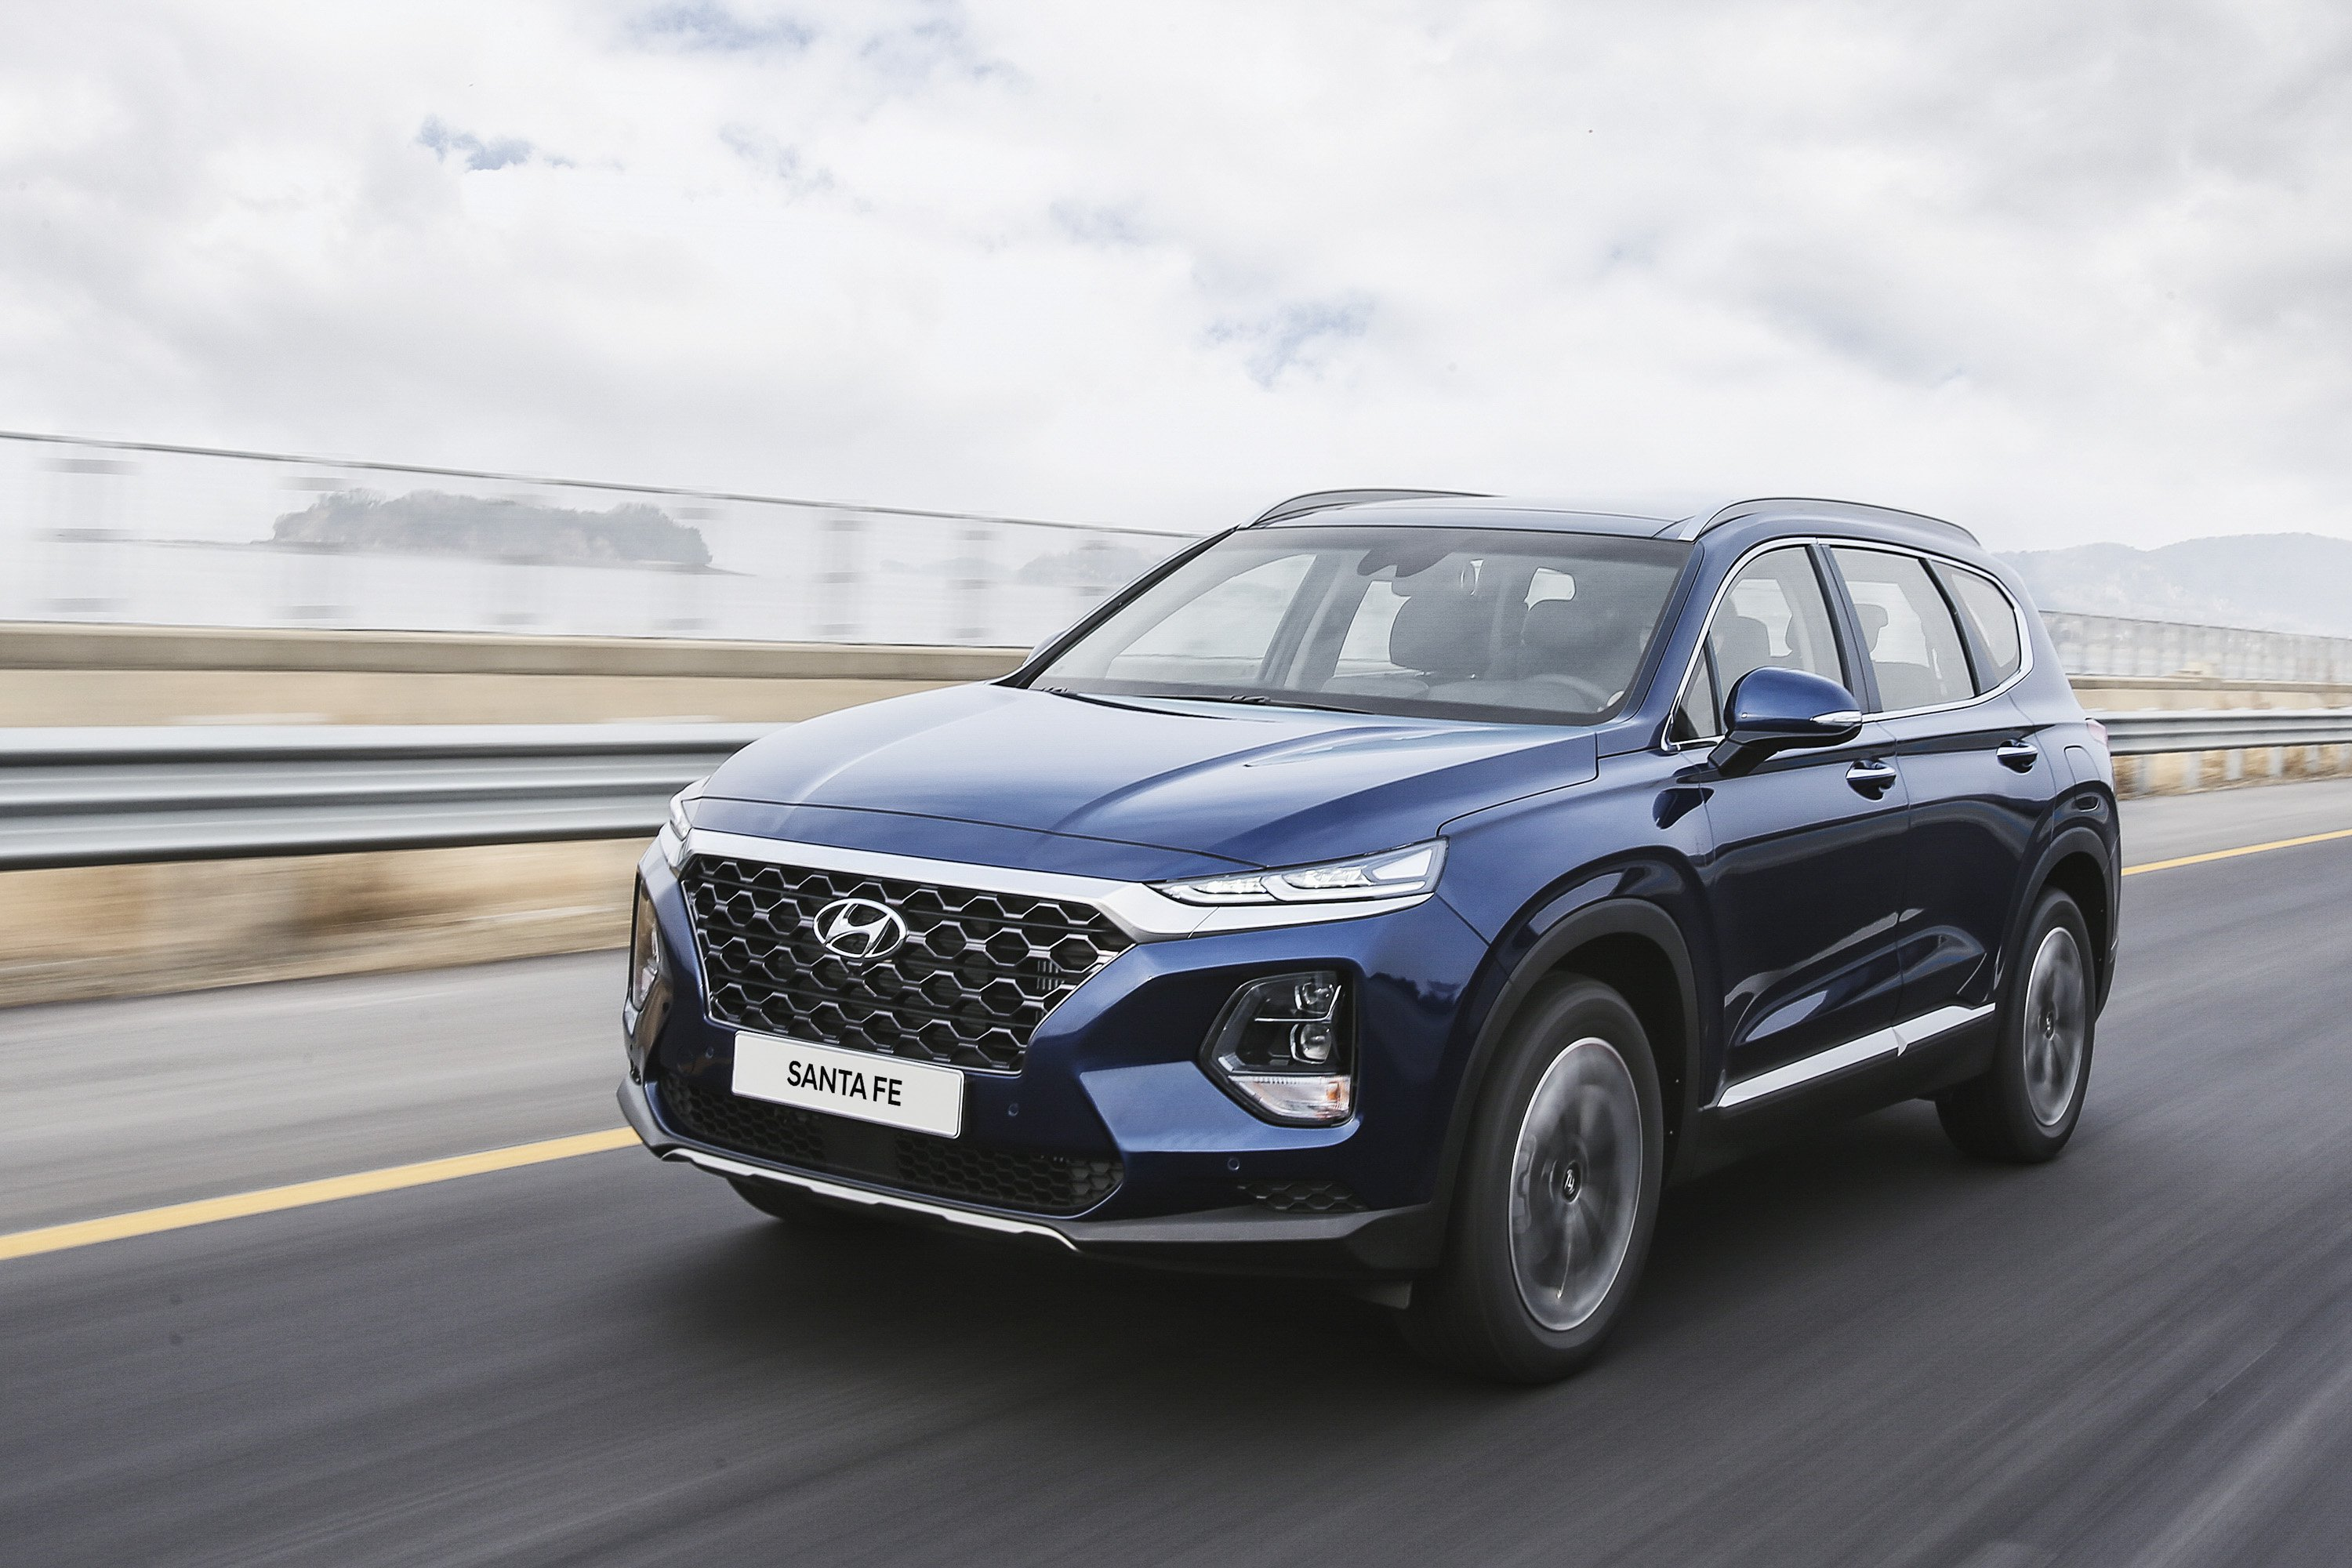 99 The 2020 Hyundai Santa Fe Redesign and Concept